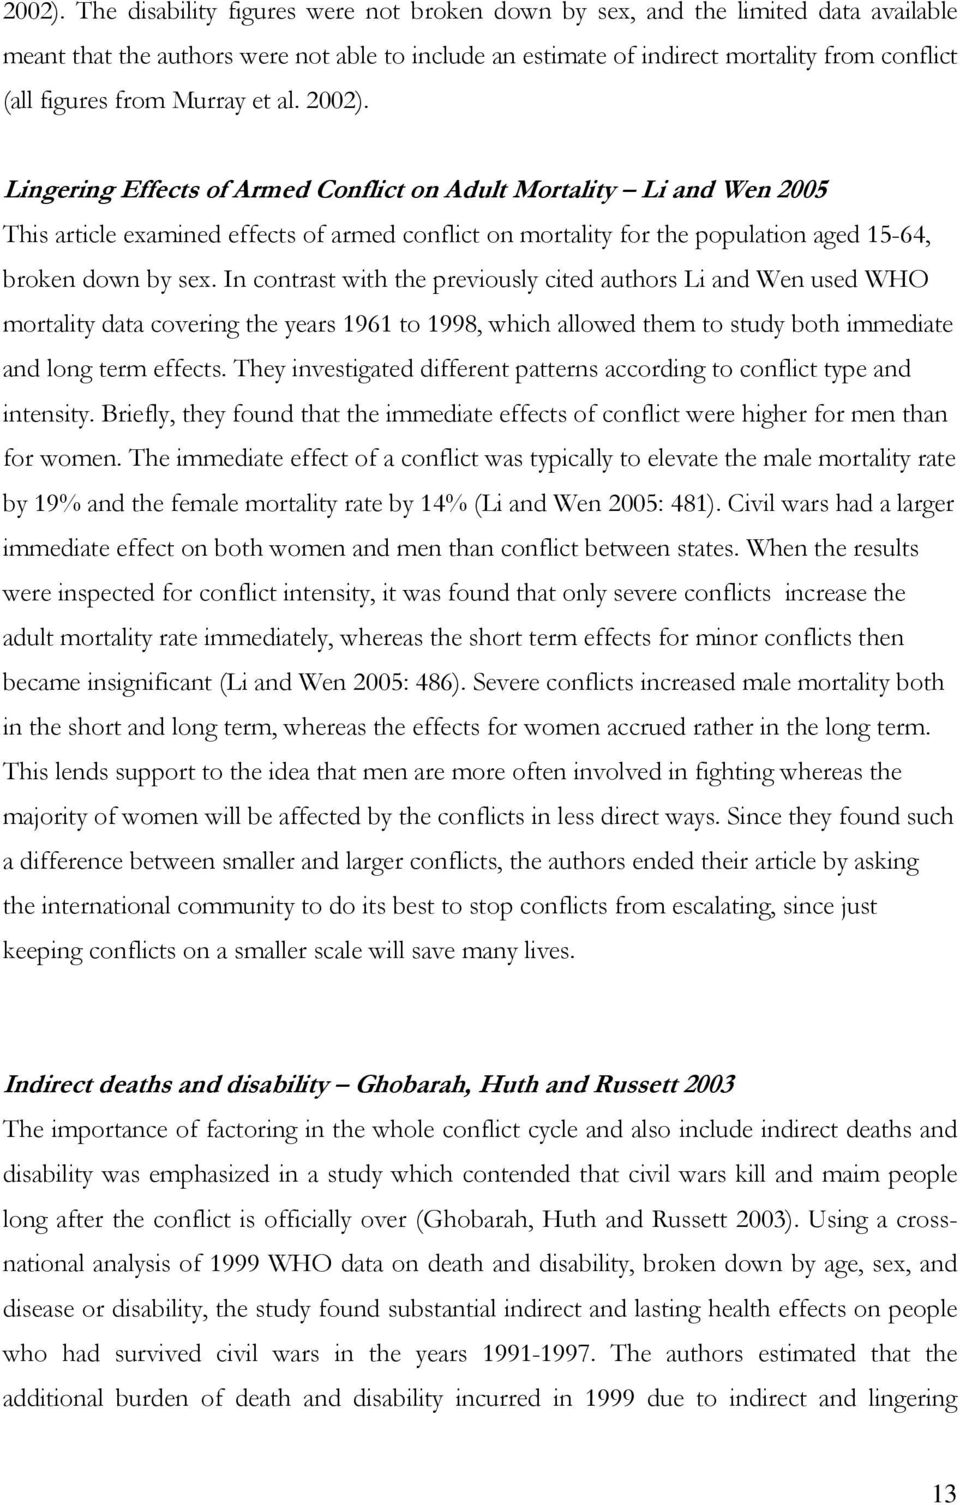 Murray et al.  Lingering Effects of Armed Conflict on Adult Mortality Li and Wen 2005 This article examined effects of armed conflict on mortality for the population aged 15-64, broken down by sex.